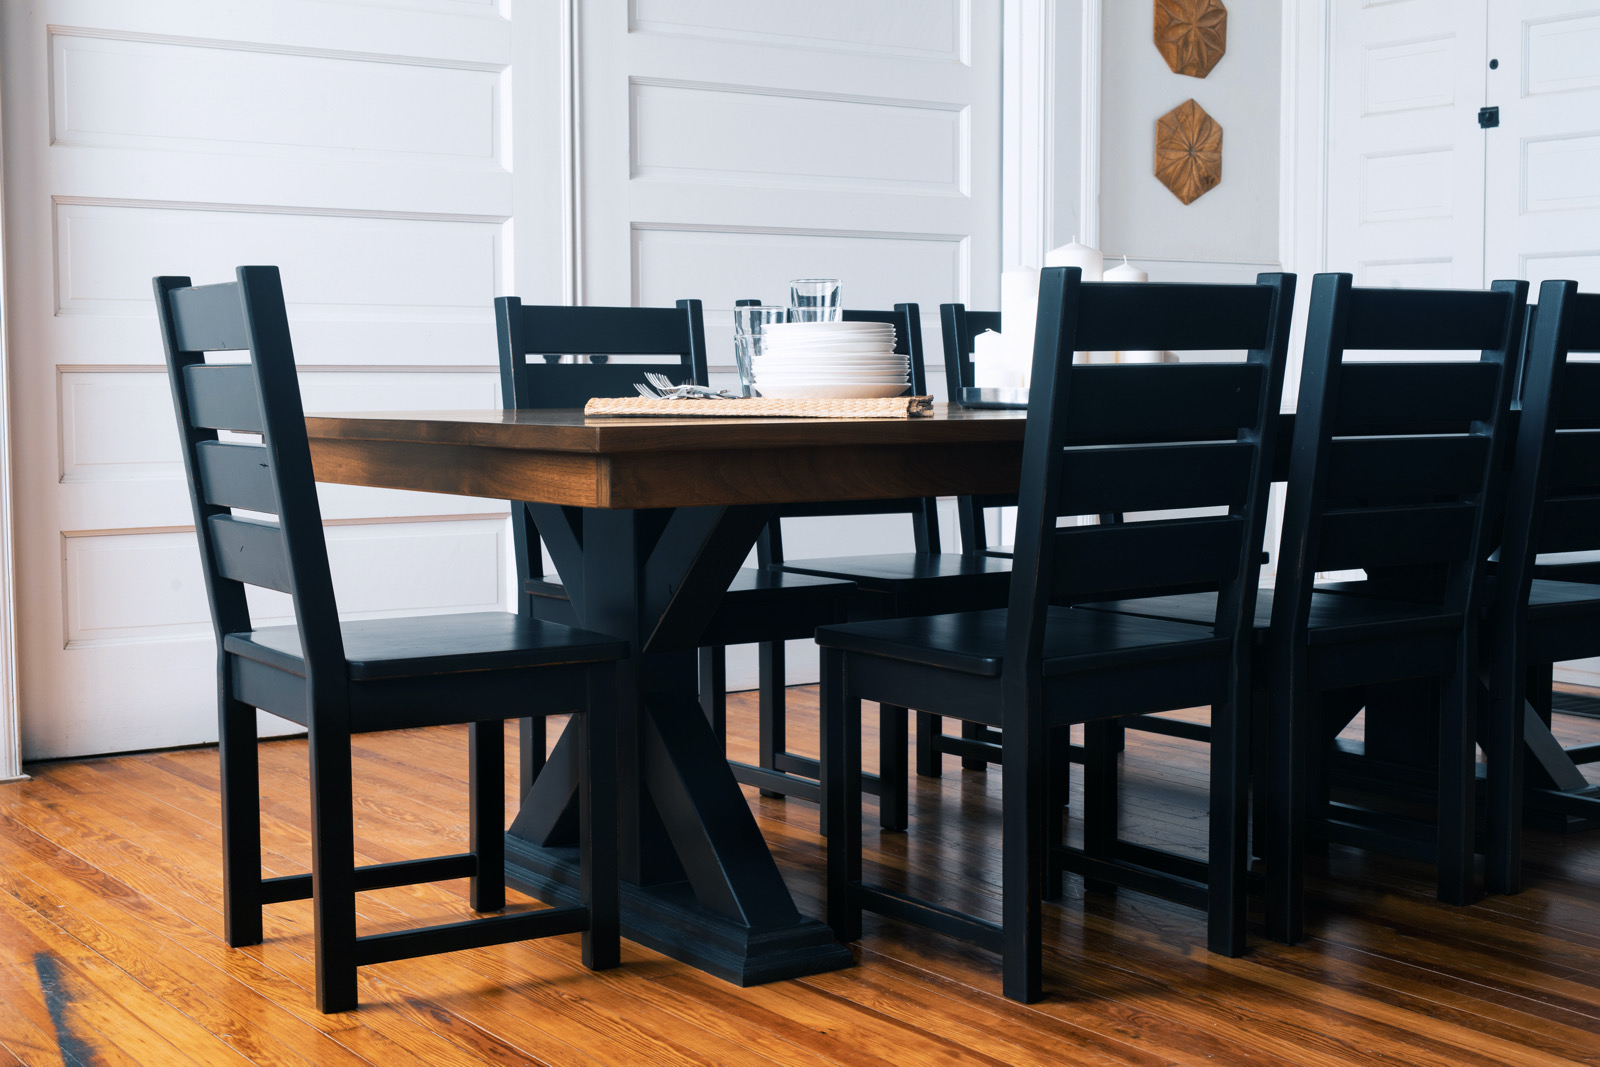 Belmont Pedestal Base Table, Pedestal Dining Room Tables And Chairs